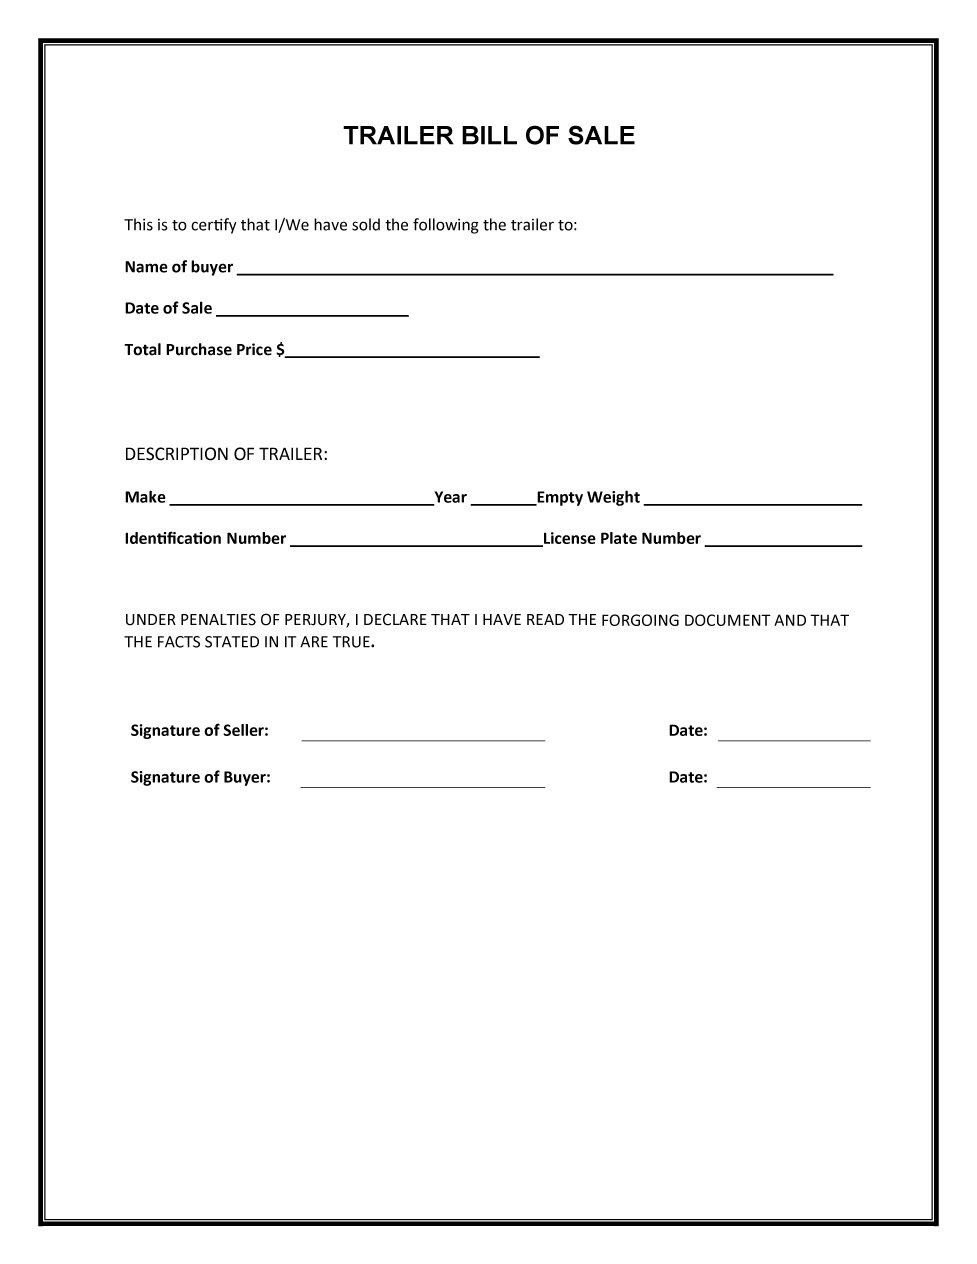 Bill Of Sale form Template 45 Fee Printable Bill Of Sale Templates Car Boat Gun